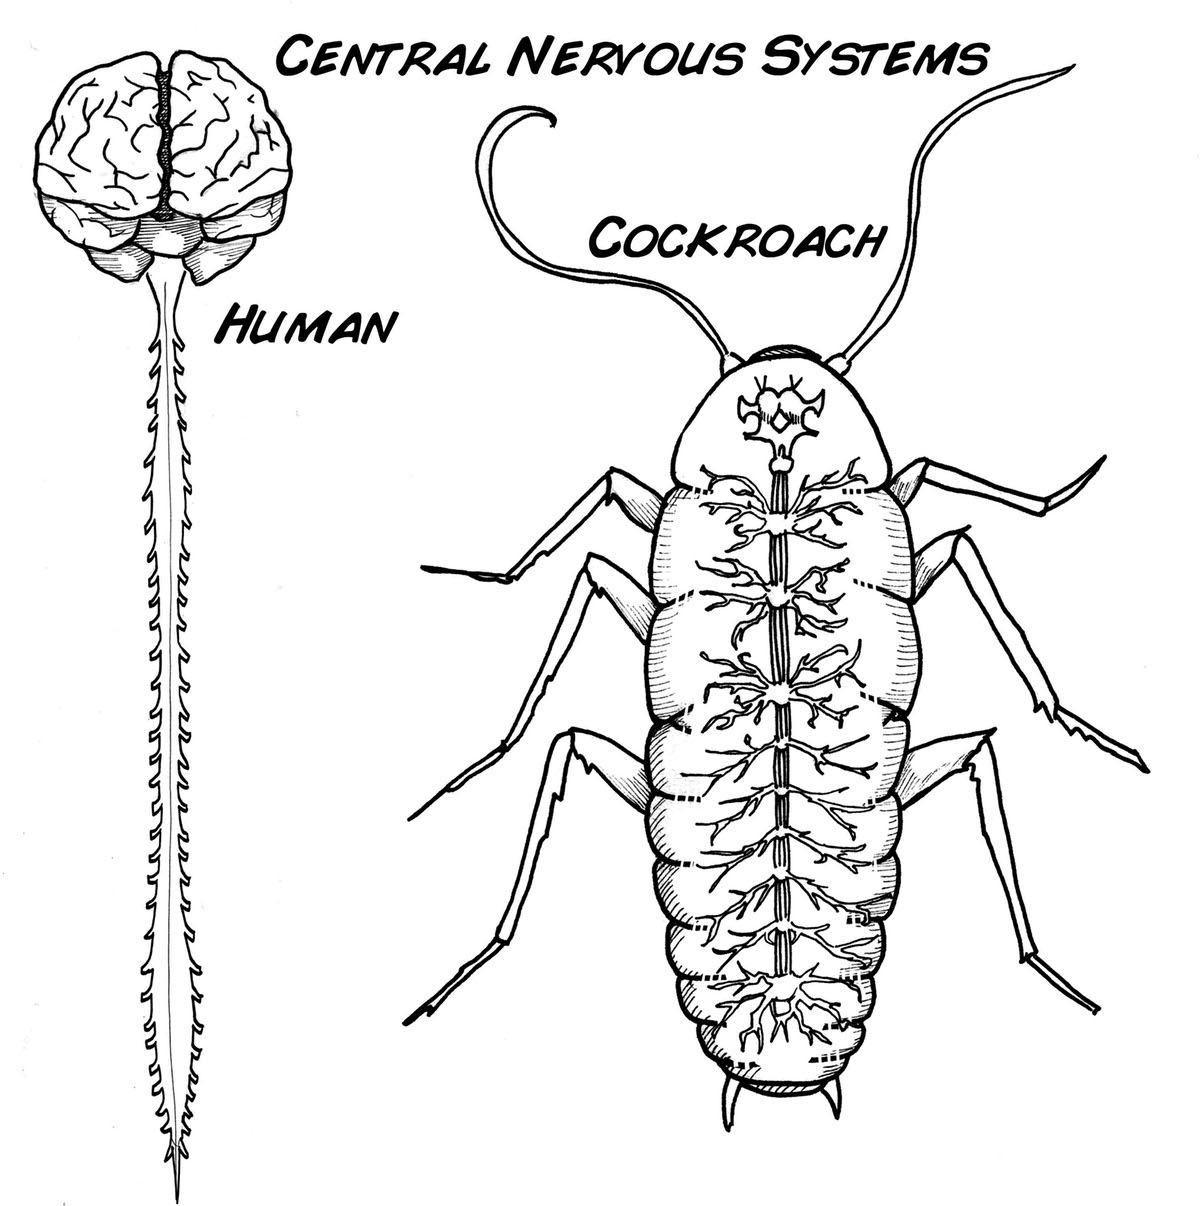 1200x1206 Nervous System Of Cockroach Brain